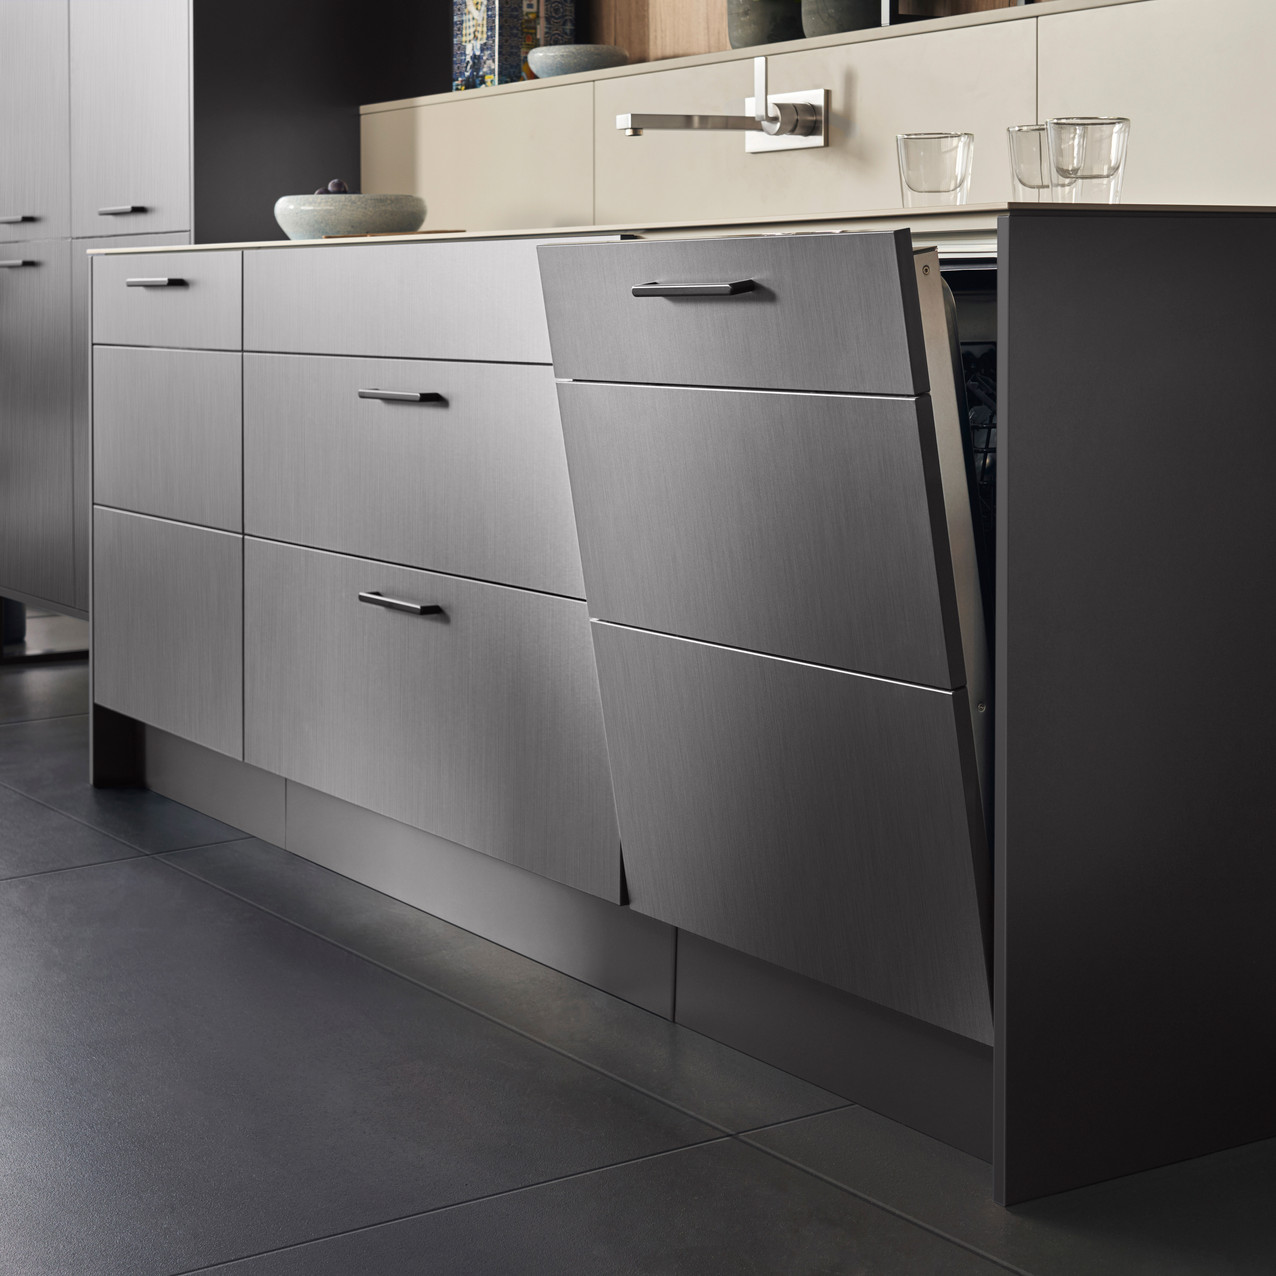 Leicht Metea metallic finish dishwasher